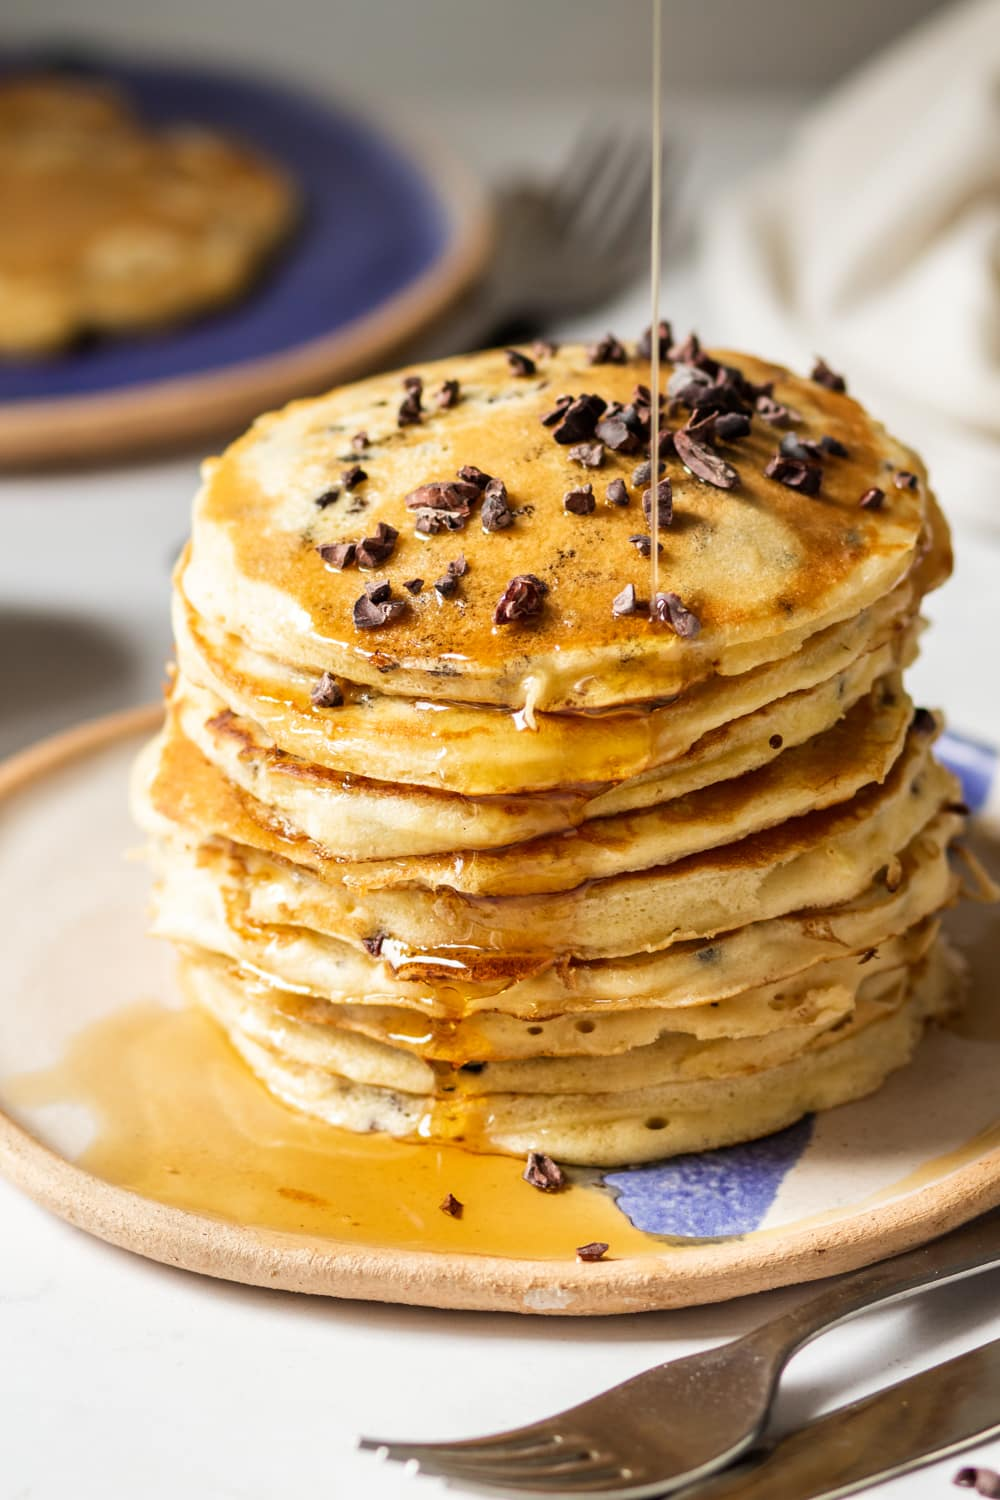 A stack of nine chocolate chip pancakes on a white plate. Syrup is being poured on the pancakes and is dripping down the side of the stack. A fork and knife are set next to the plate.